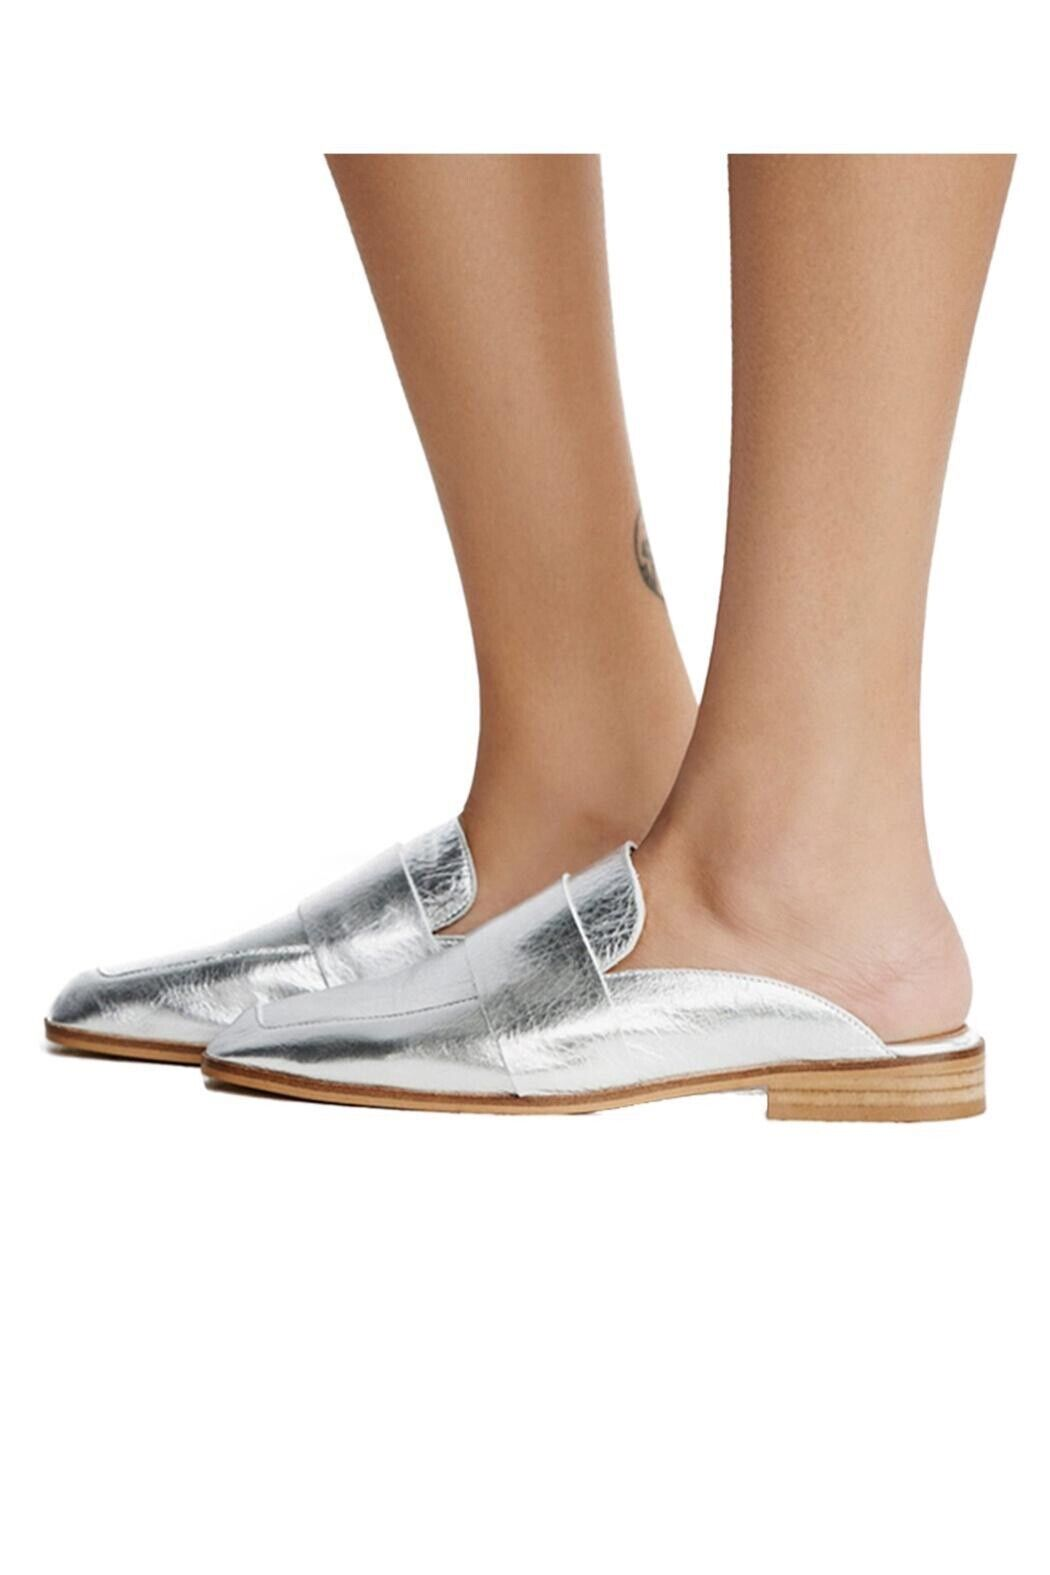 "Free people ""at ease"" silver loafers, size 5.5 New  98.00"